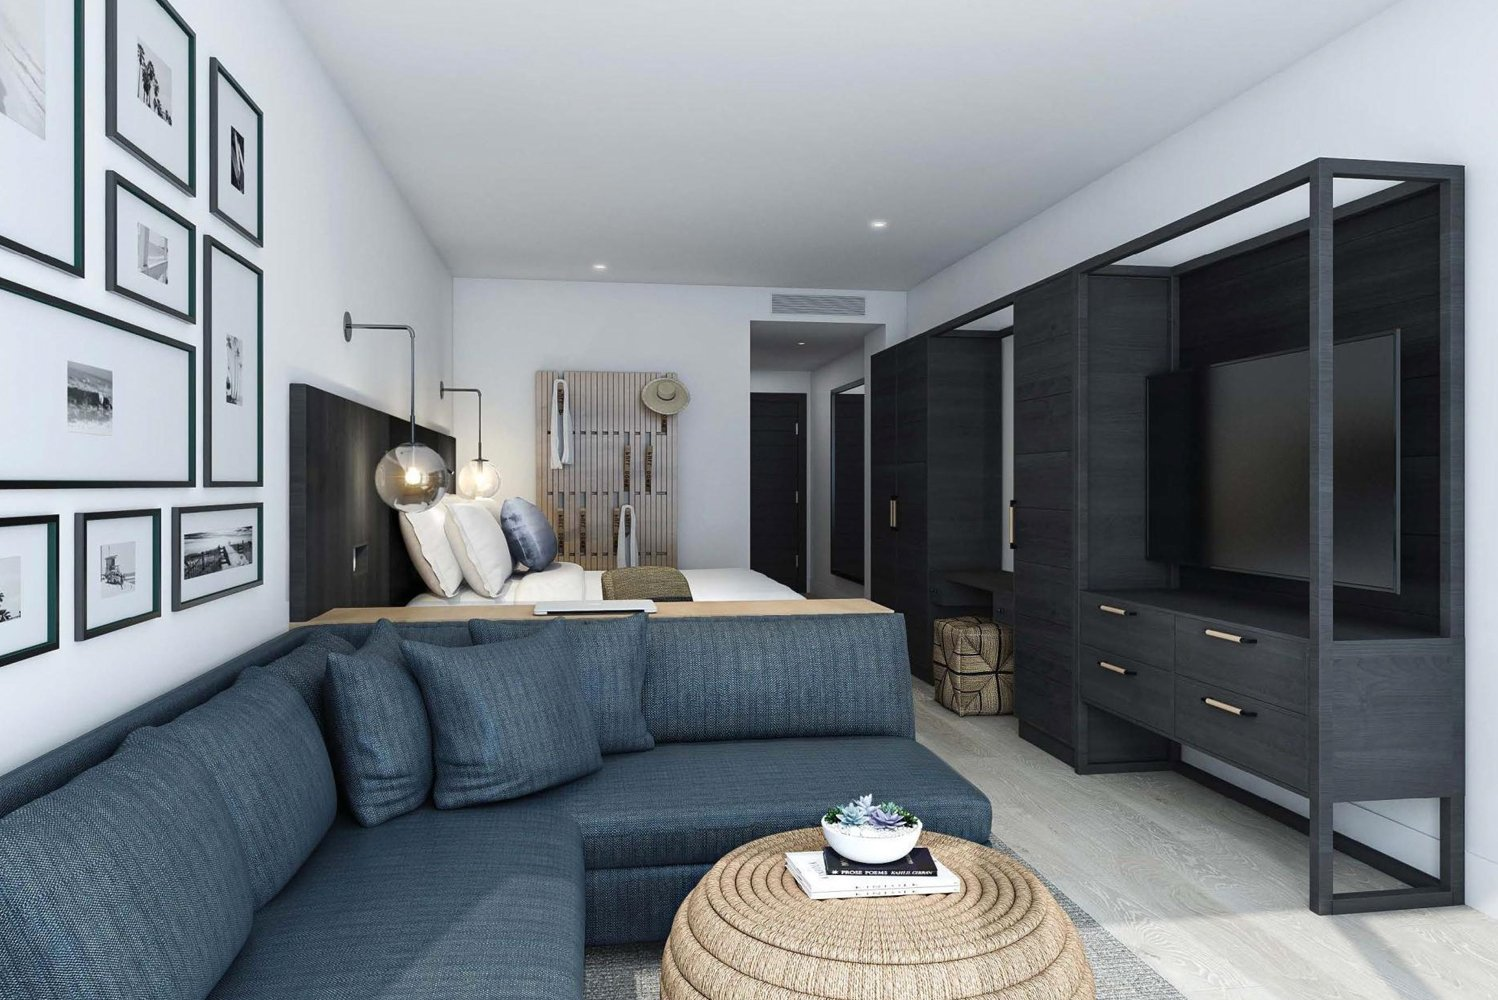 Wave Resort's rooms were designed by Hirsch Bedner Associates (HBA).